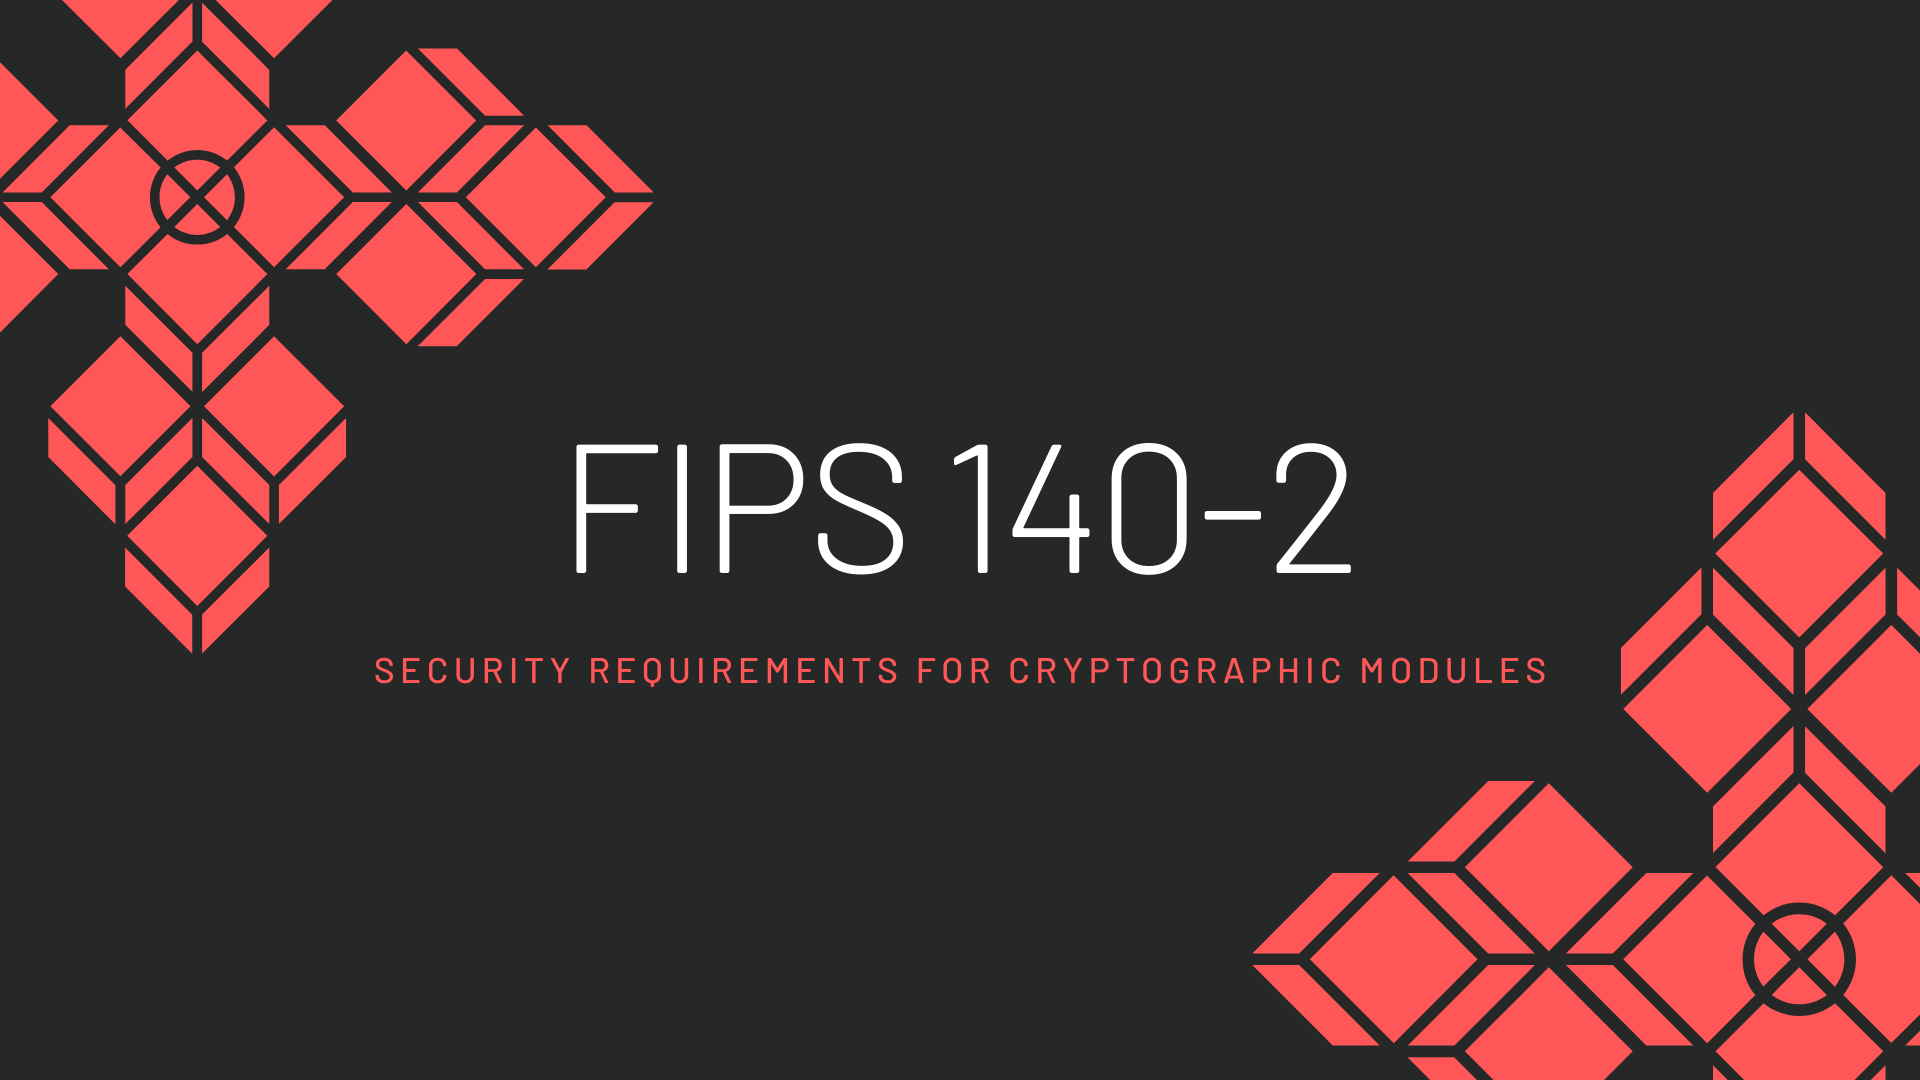 What Is FIPS 140-2?